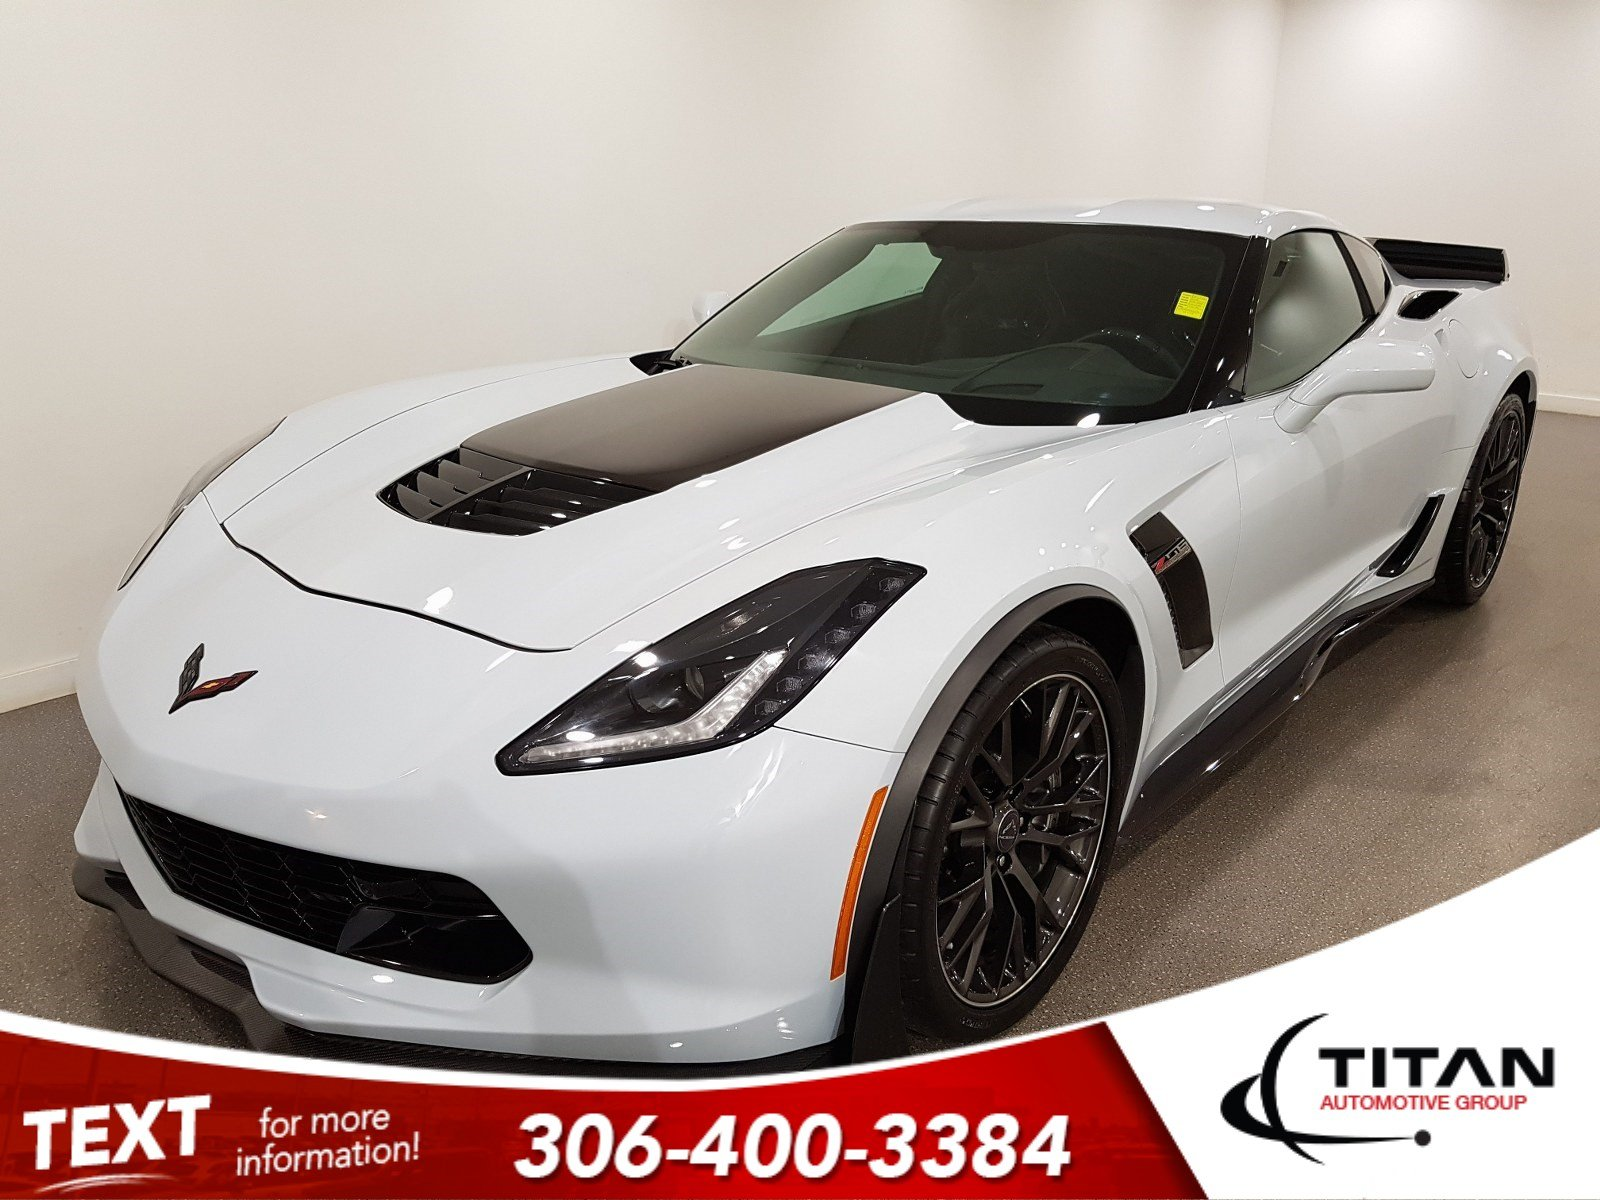 Pre-Owned 2018 Chevrolet Corvette Z06 3LZ|Z07 Performance|Supercharged|Brembo|NAV|BOSE|Ceramic Matrix Gray